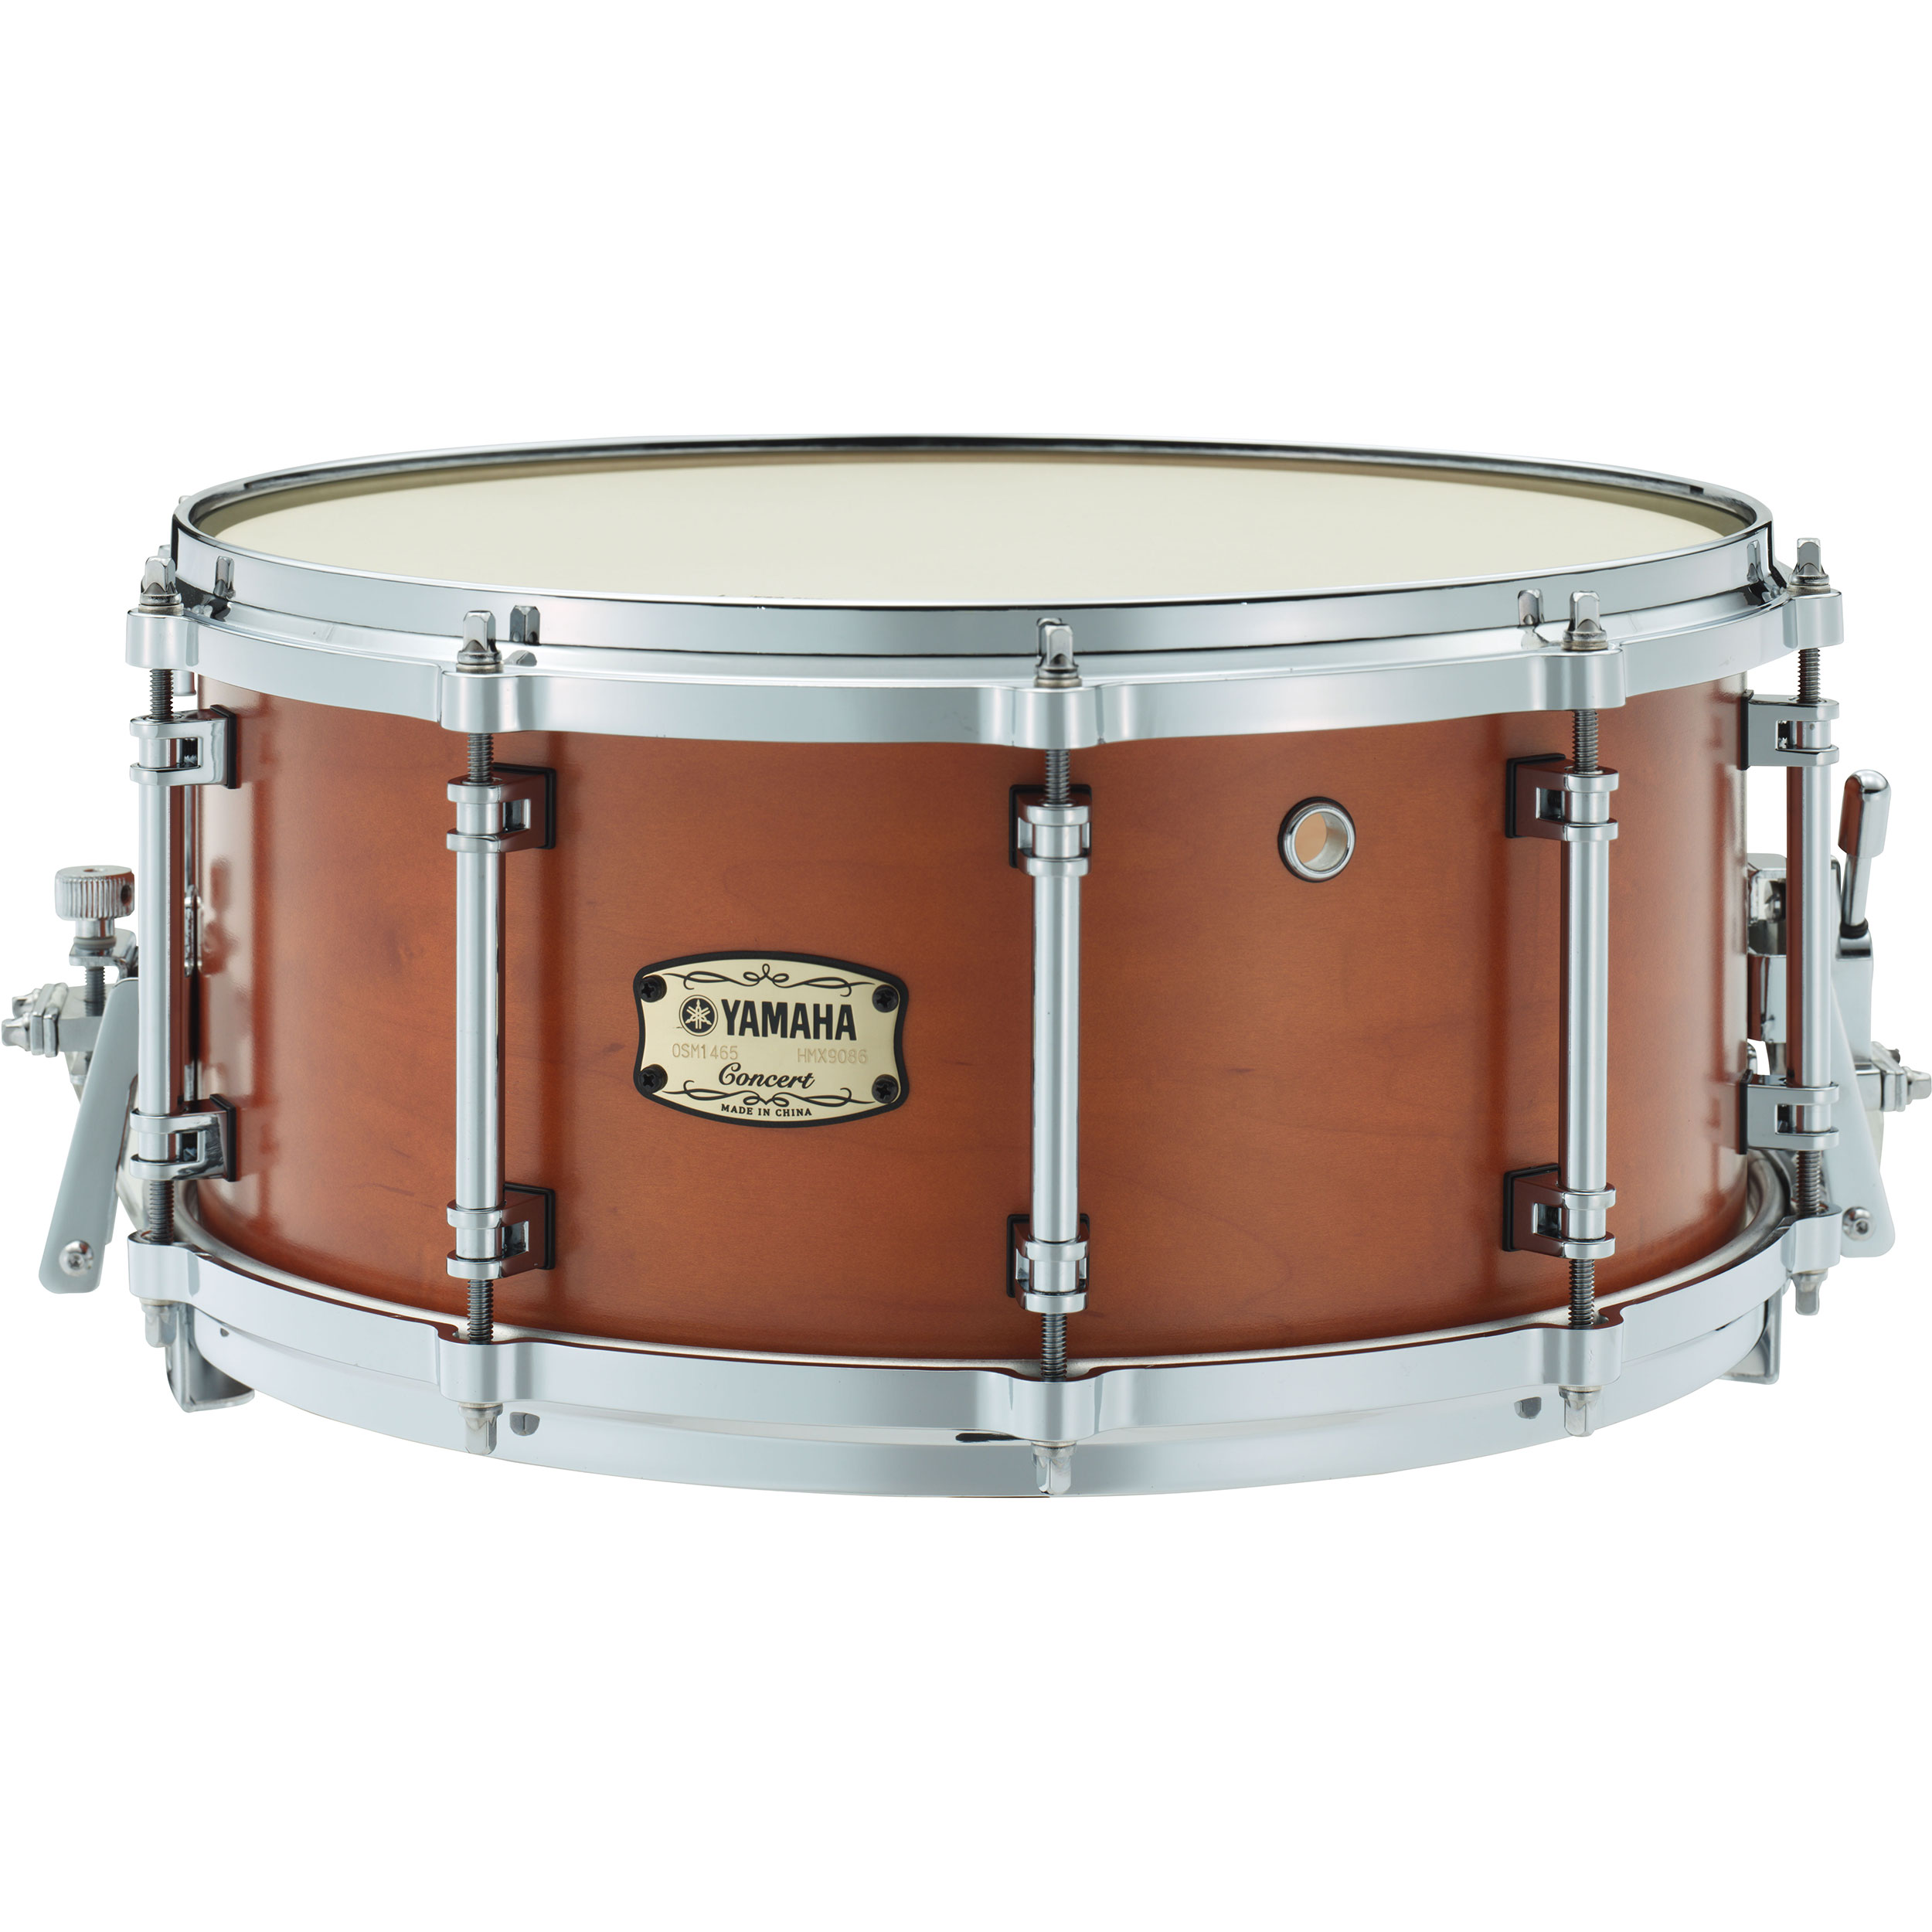 """Yamaha 14"""" x 6.5"""" Orchestral Series Maple Concert Snare Drum"""